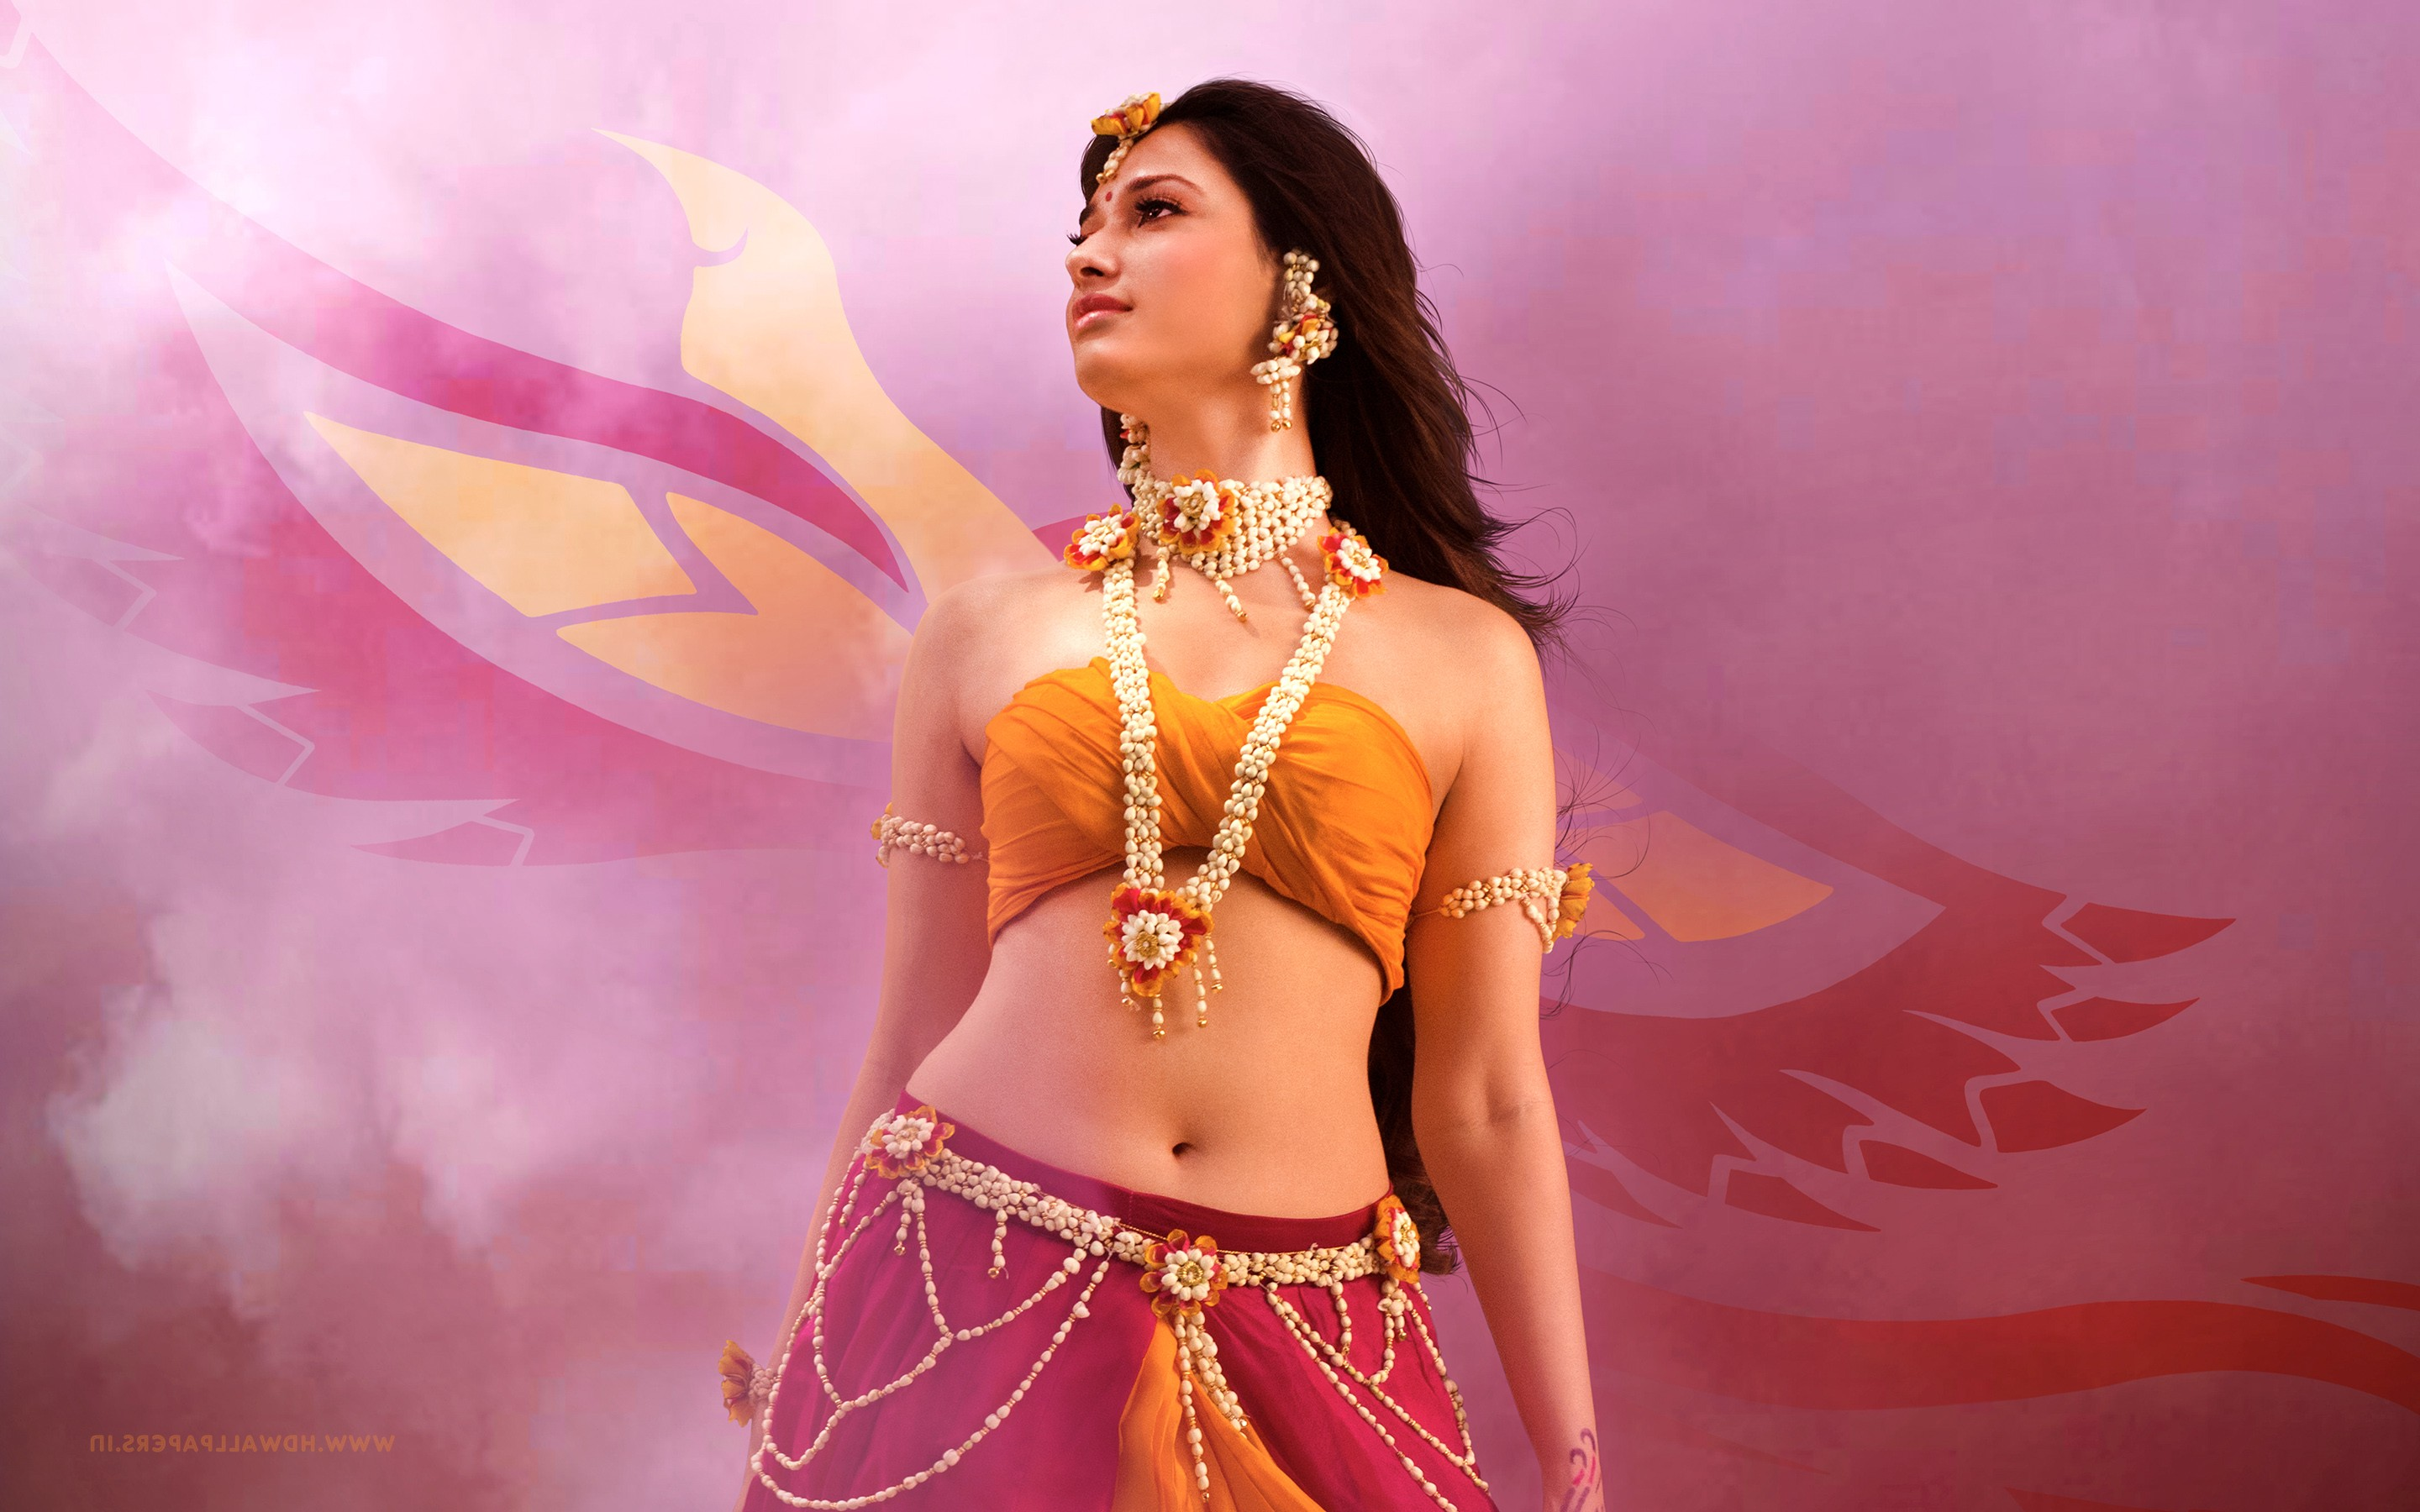 tamanna bhatia in bahubali - photo #21